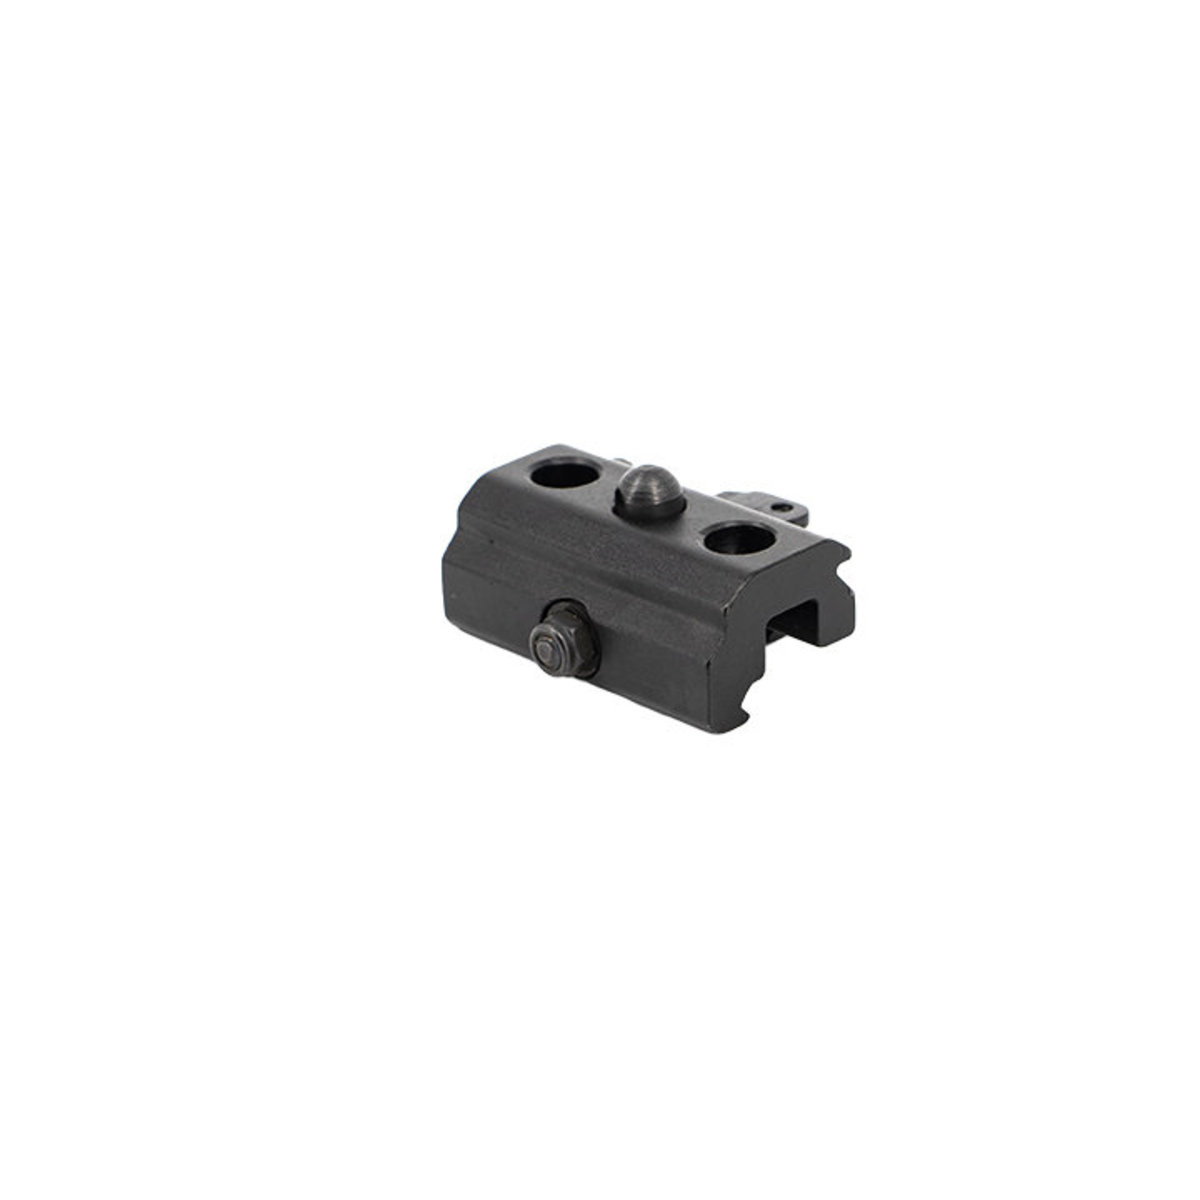 View larger image of Valken Bipod Mount with QD Lever